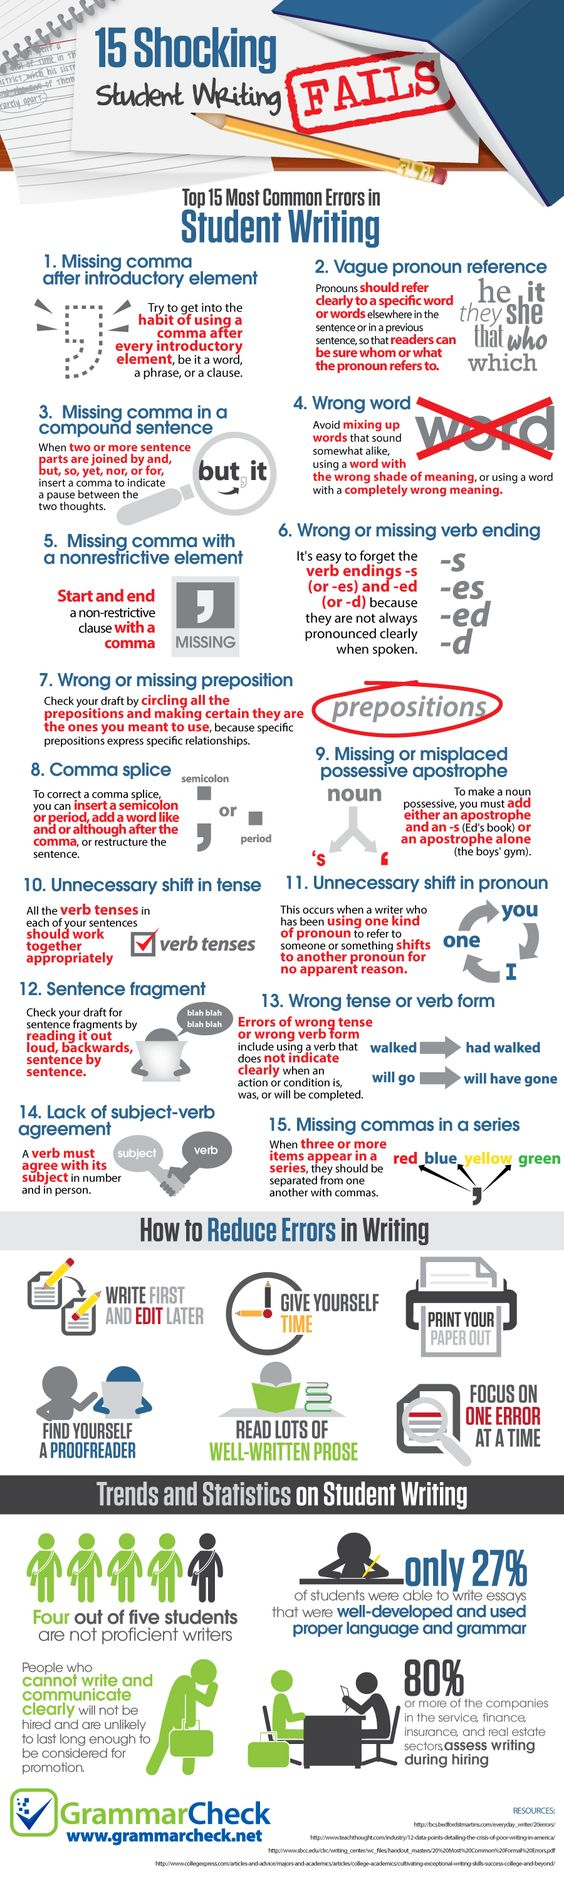 15 shocking student writing fails infographic about writing learning english middot 15 shocking student writing fails infographic